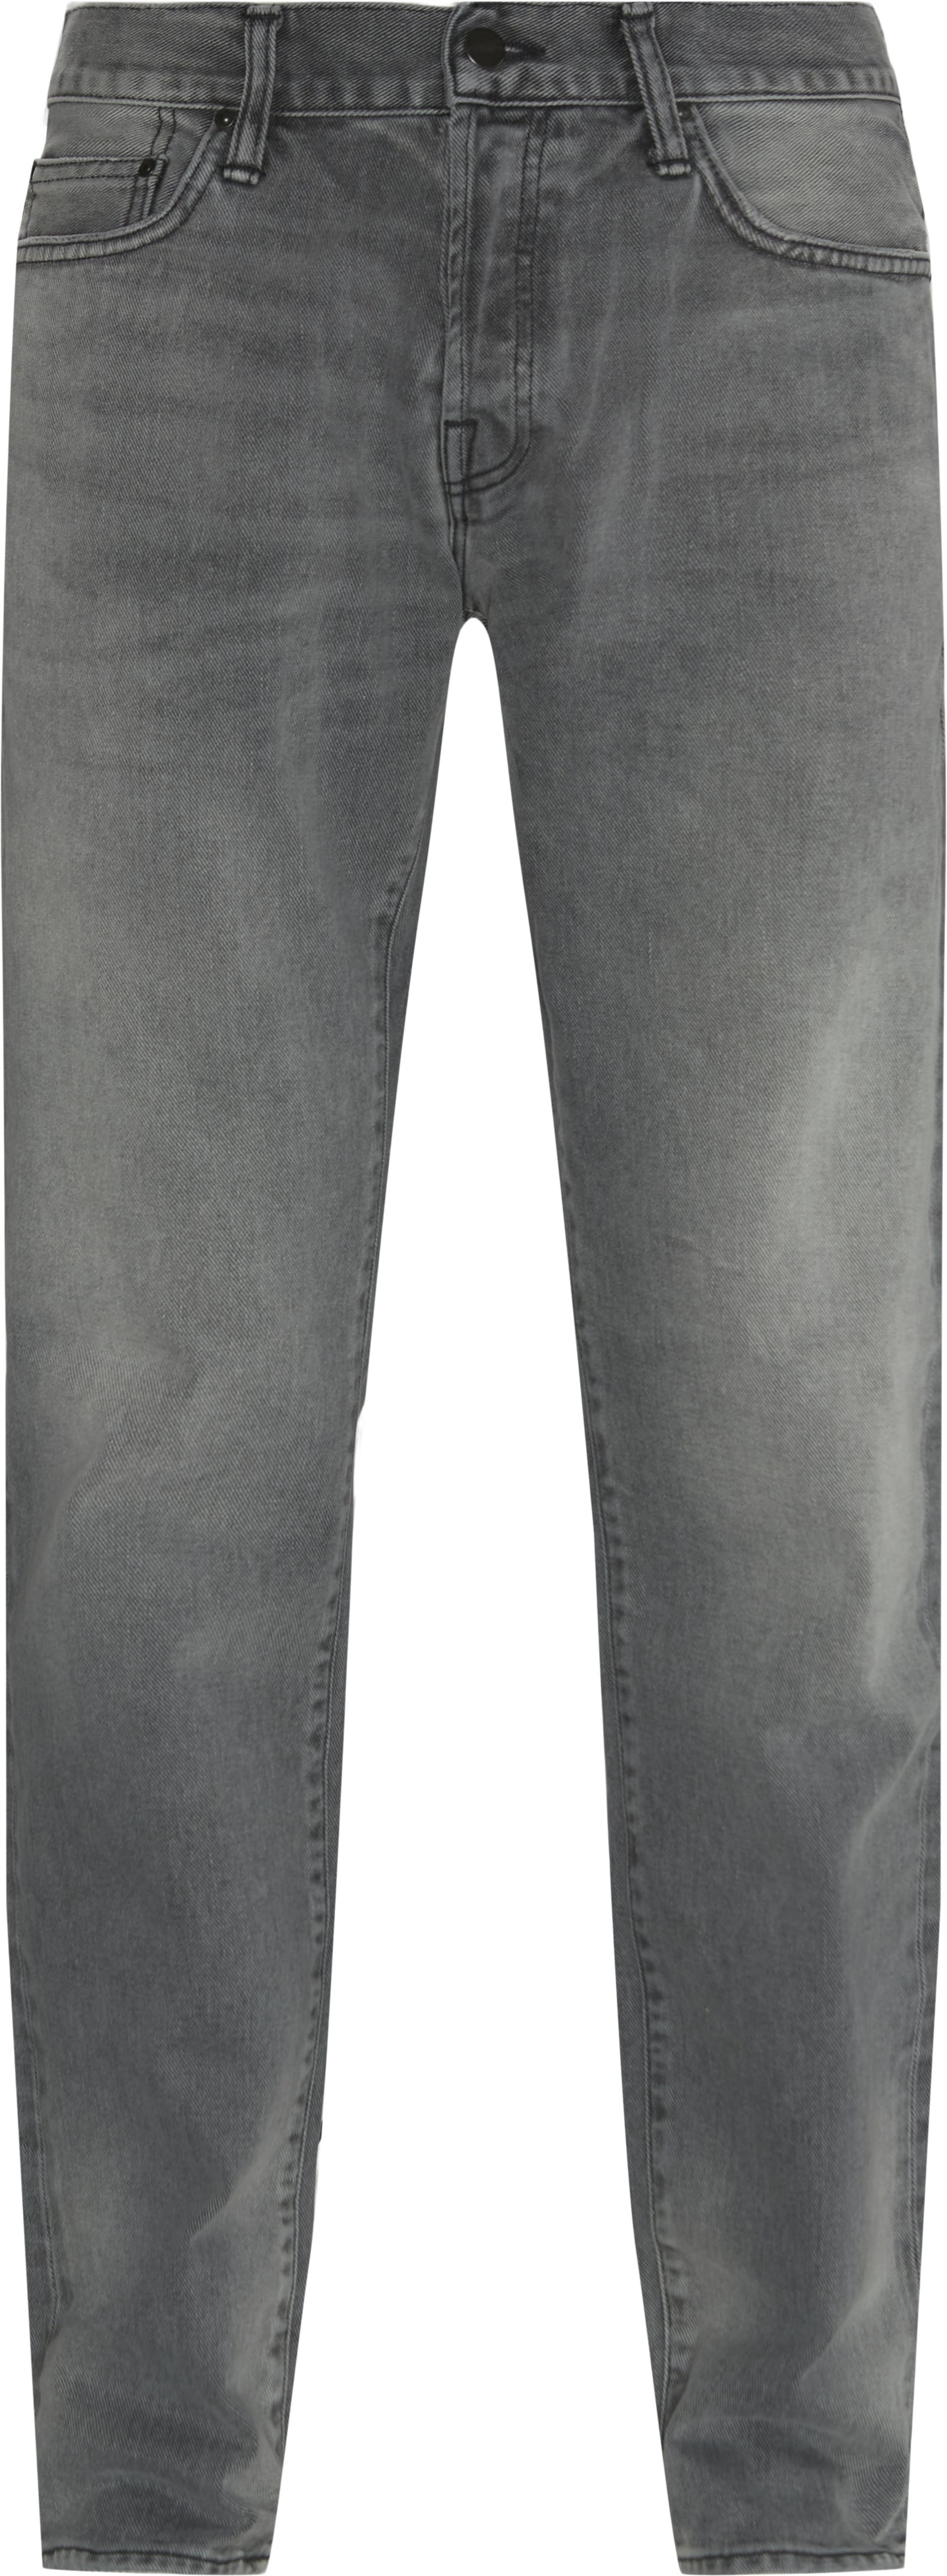 Klondike Pant I024945 - Jeans - Tapered fit - Sort